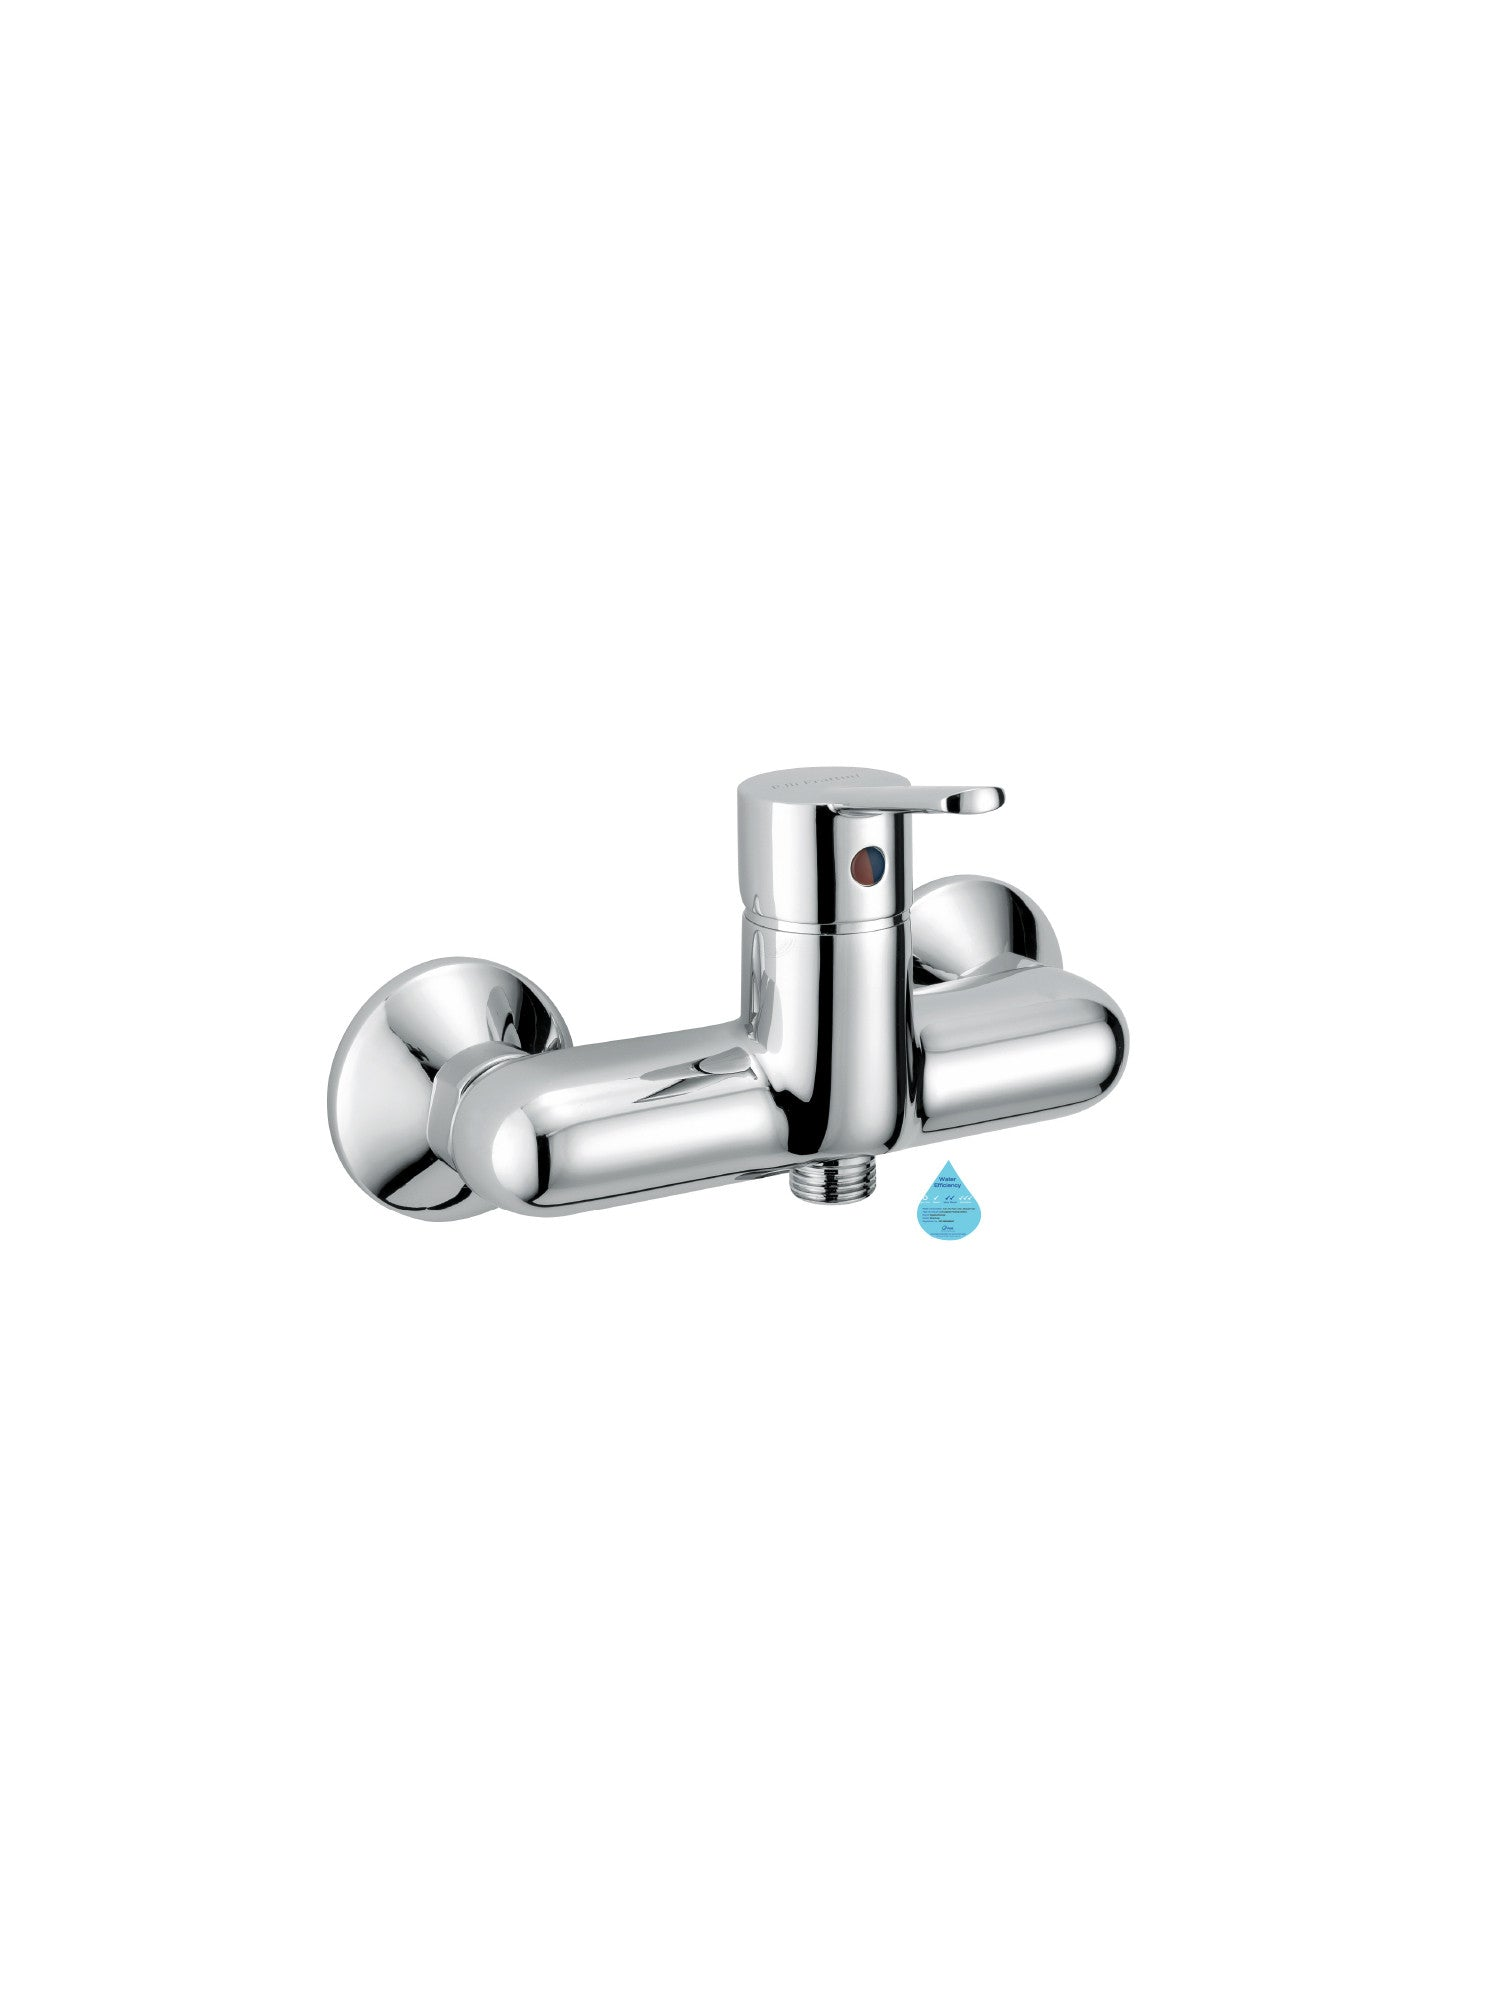 Mito Exposed Shower Mixer #81006